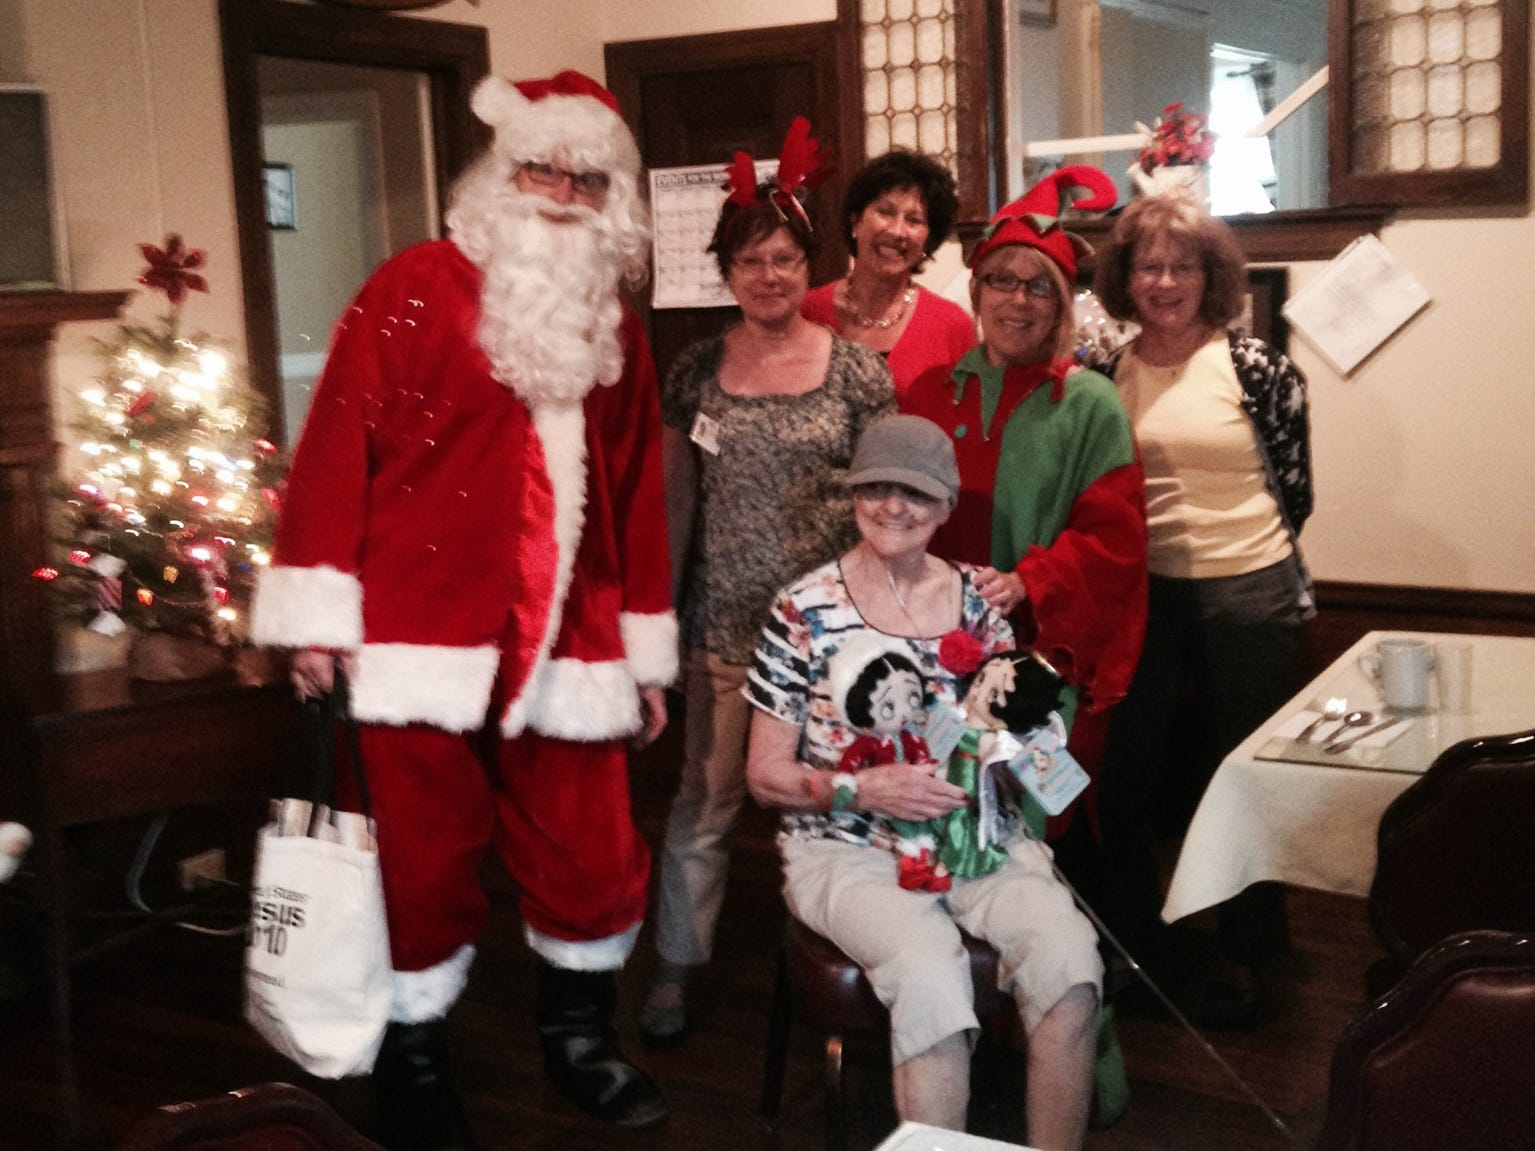 In 2015, Chemung County Adult Protective Services staff provided a Christmas in July party Wednesday for Barton Home resident Theresa Aherns. Pictured, from left are: Bill Wandell (Santa), Lisa Kruckow, Kim Patterson, Janice Staples (elf), Mary Burin and, seated, Theresa Aherns.